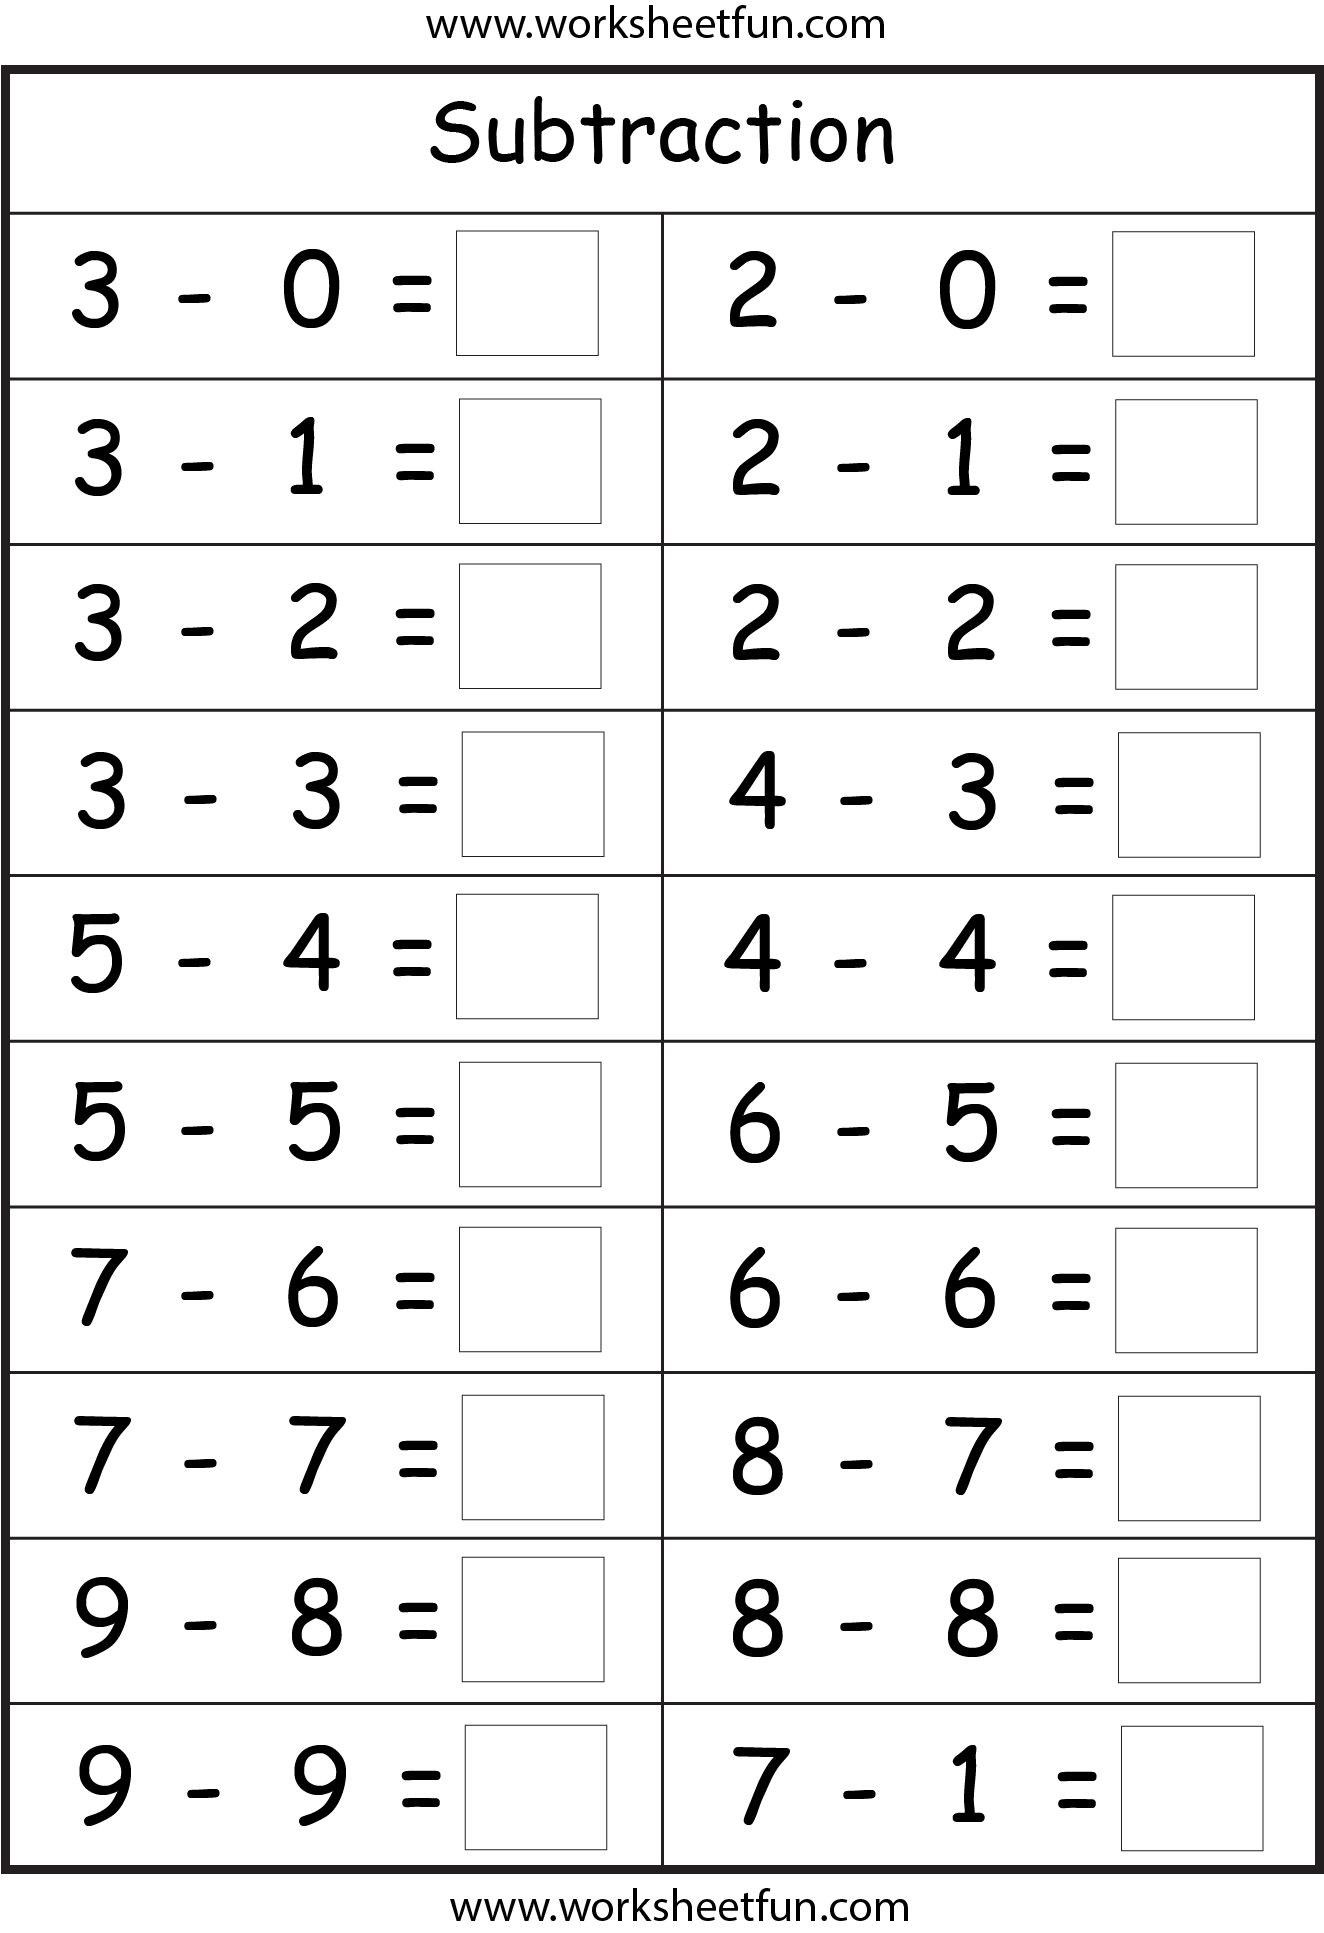 Subtraction 4 Worksheets Free Printable Worksheets Worksheetfun